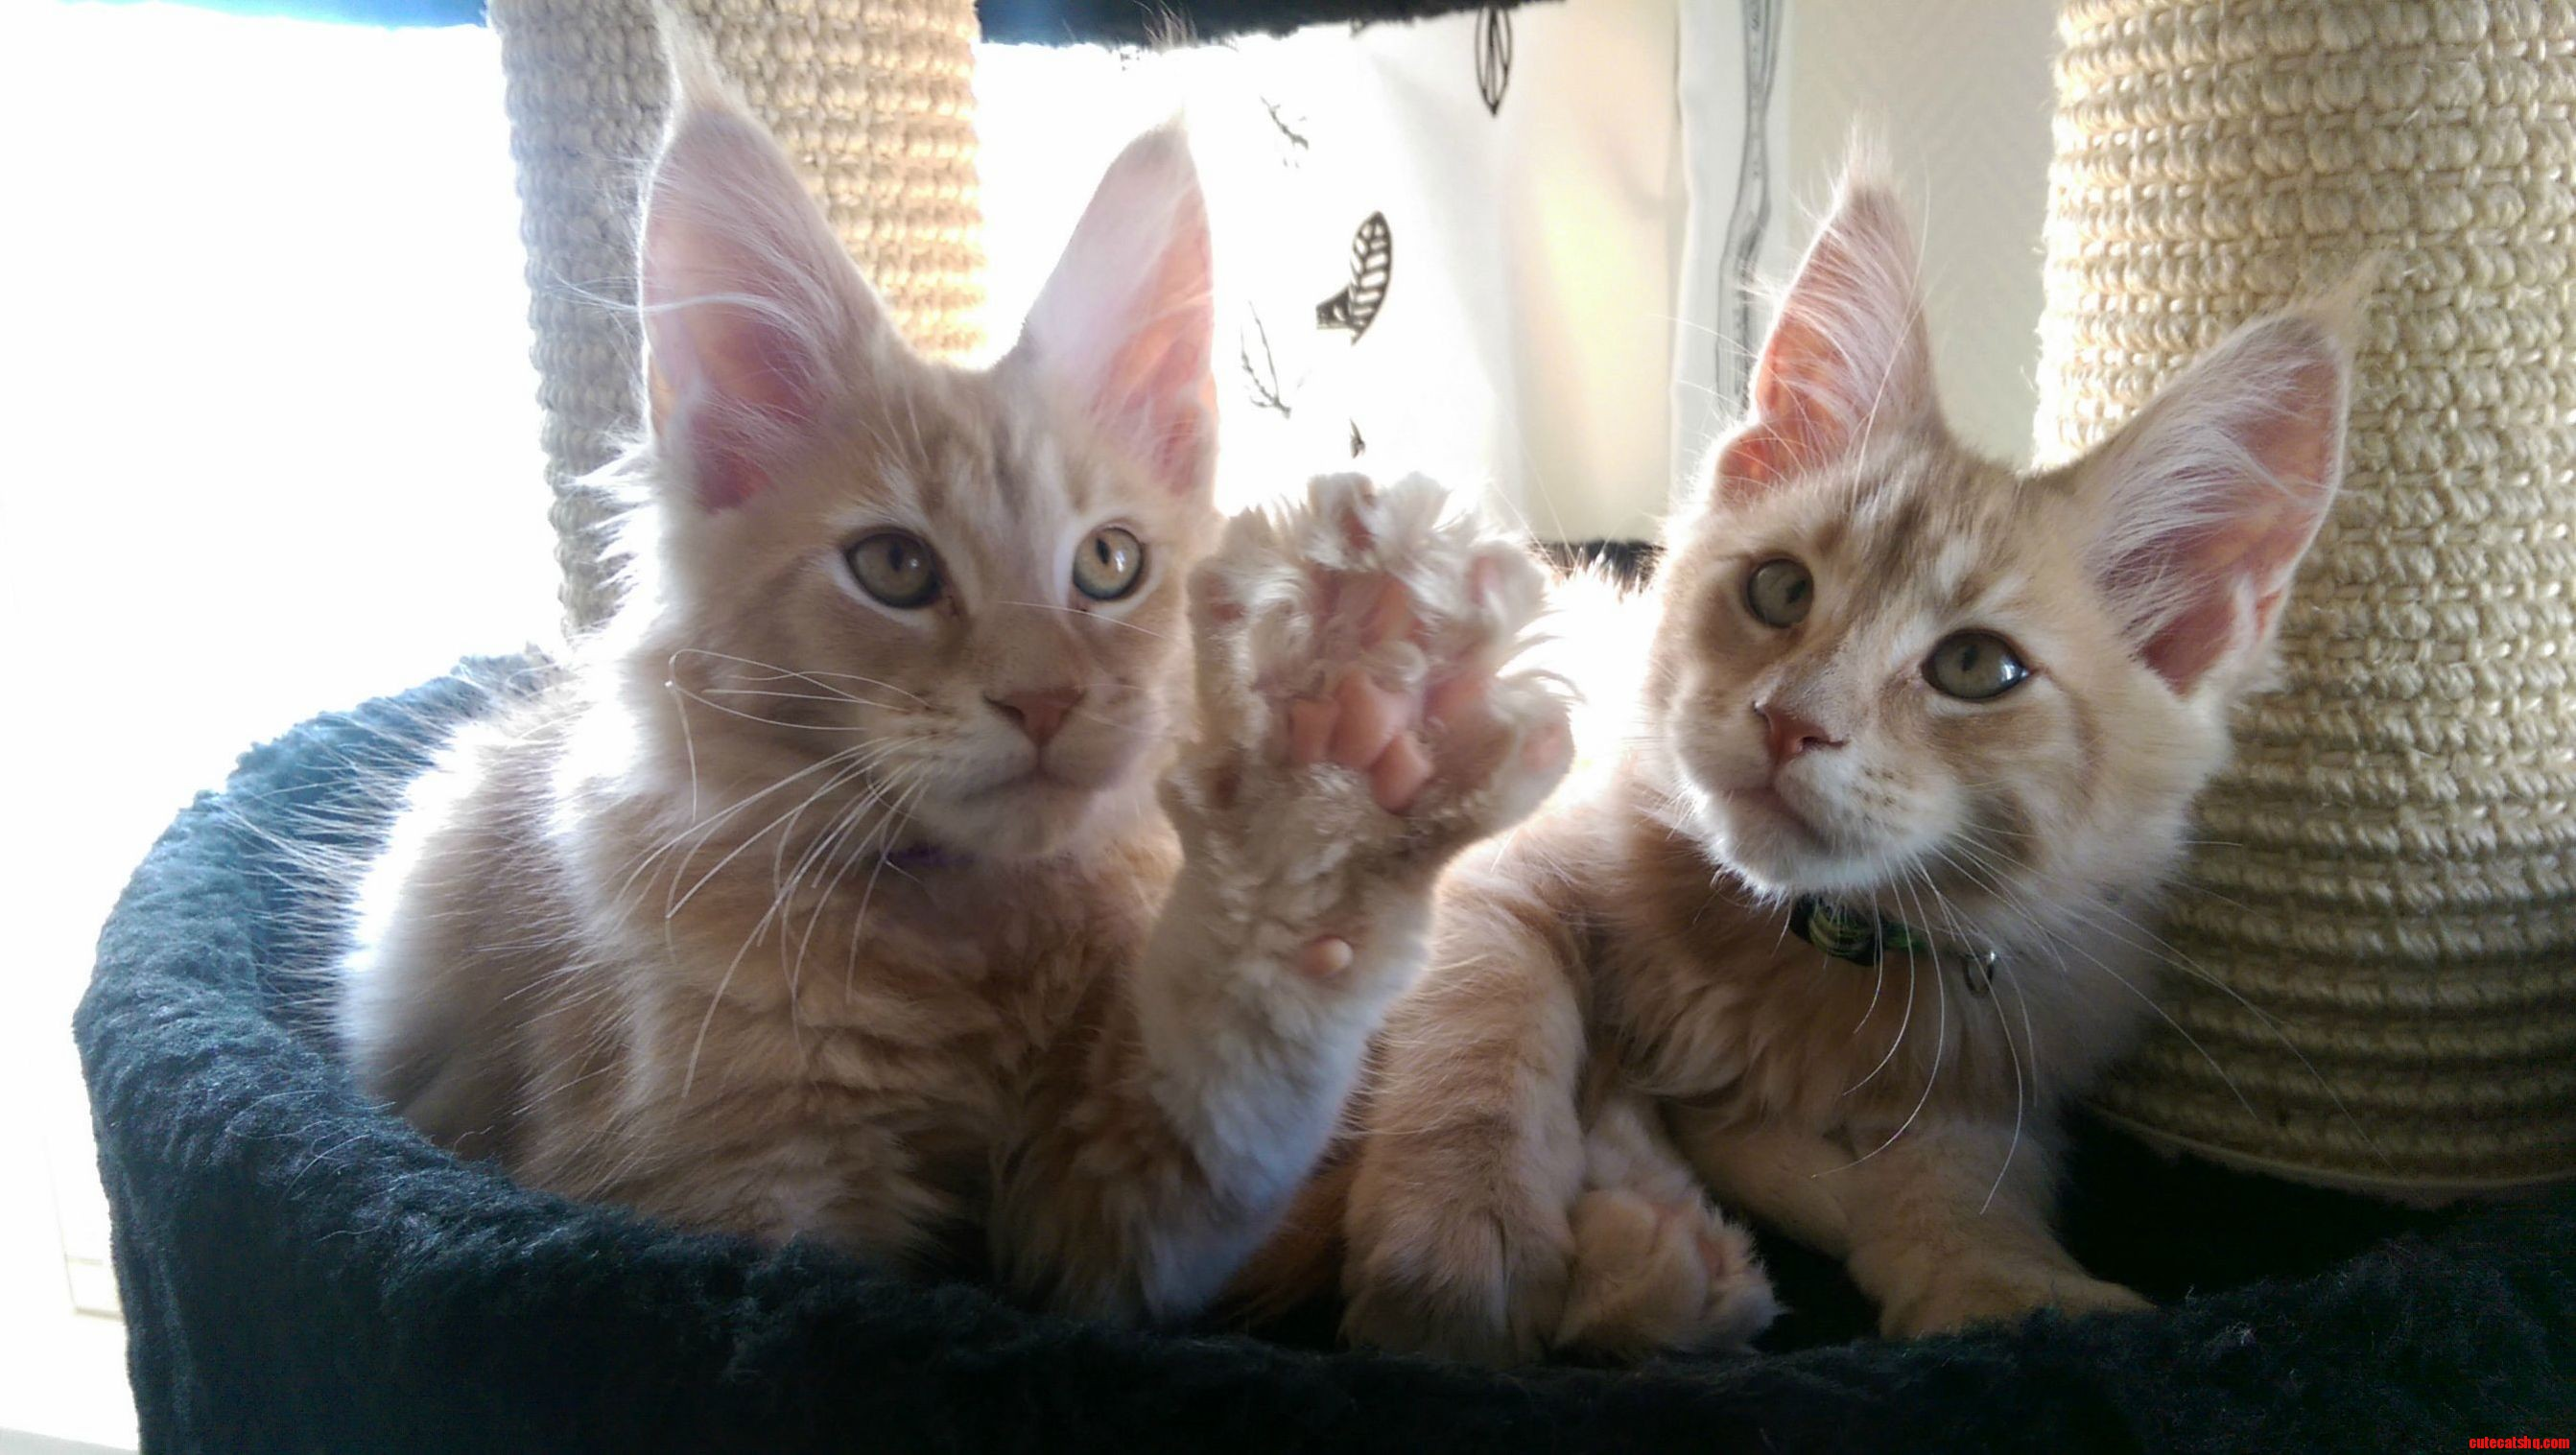 Brought home our two maine coon kittens last night. meet mulder and kjell